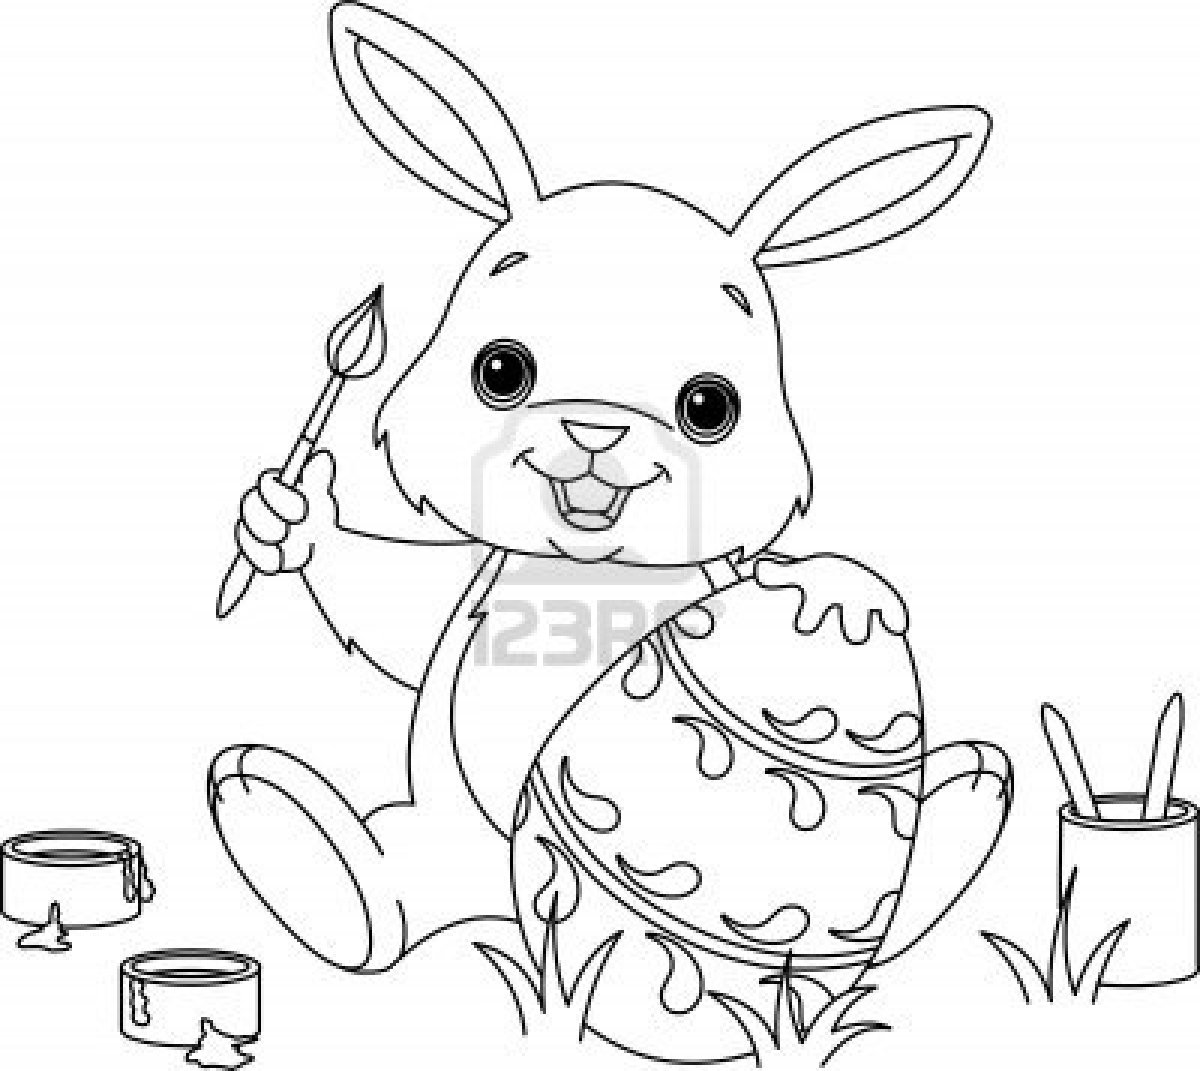 Printable coloring pages of easter - Easter Bunny Pictures To Color Printable